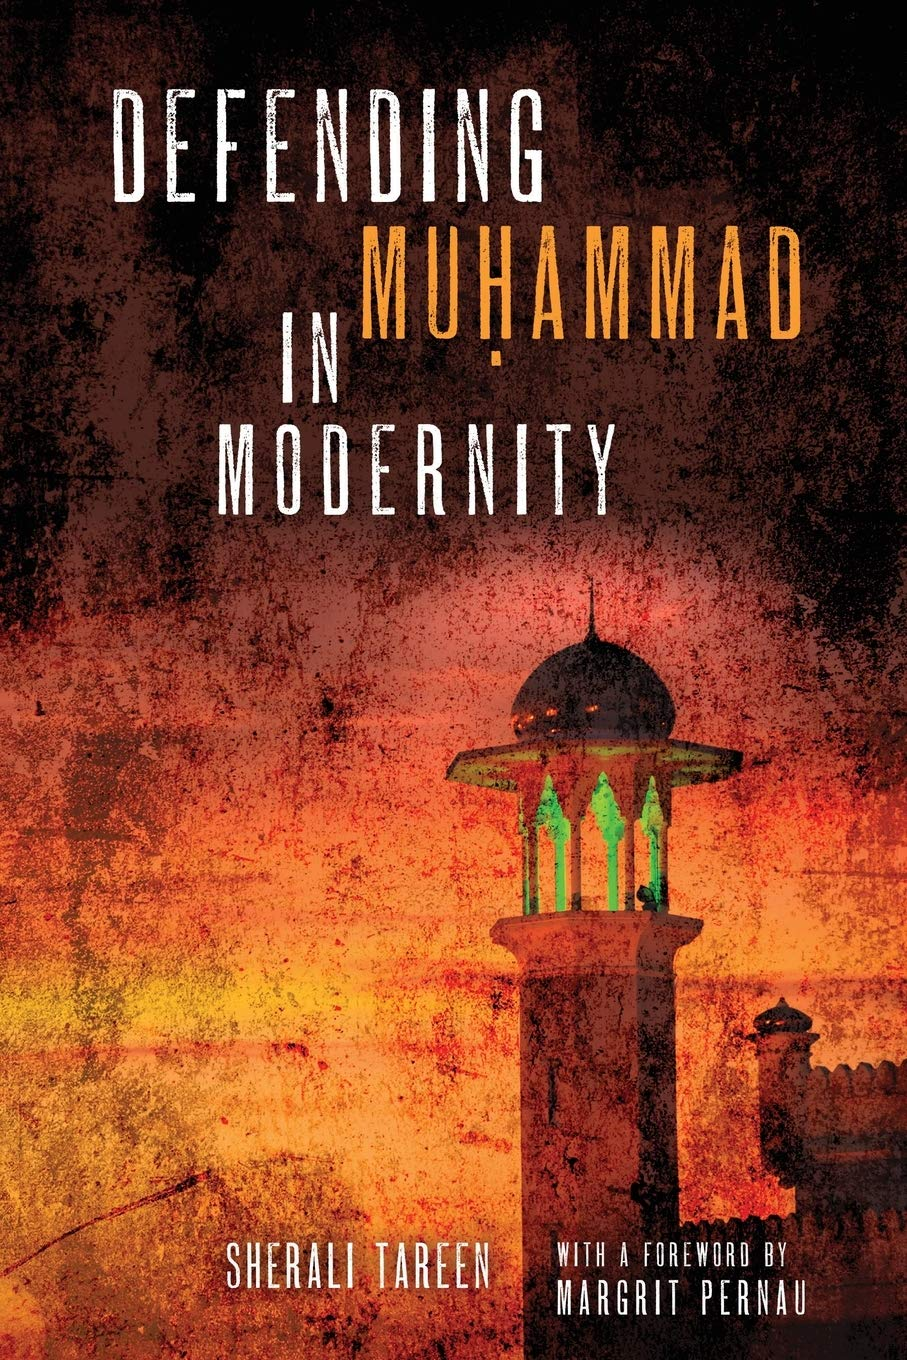 Book cover of Defending Muhammad in Modernity by SherAli Tareen